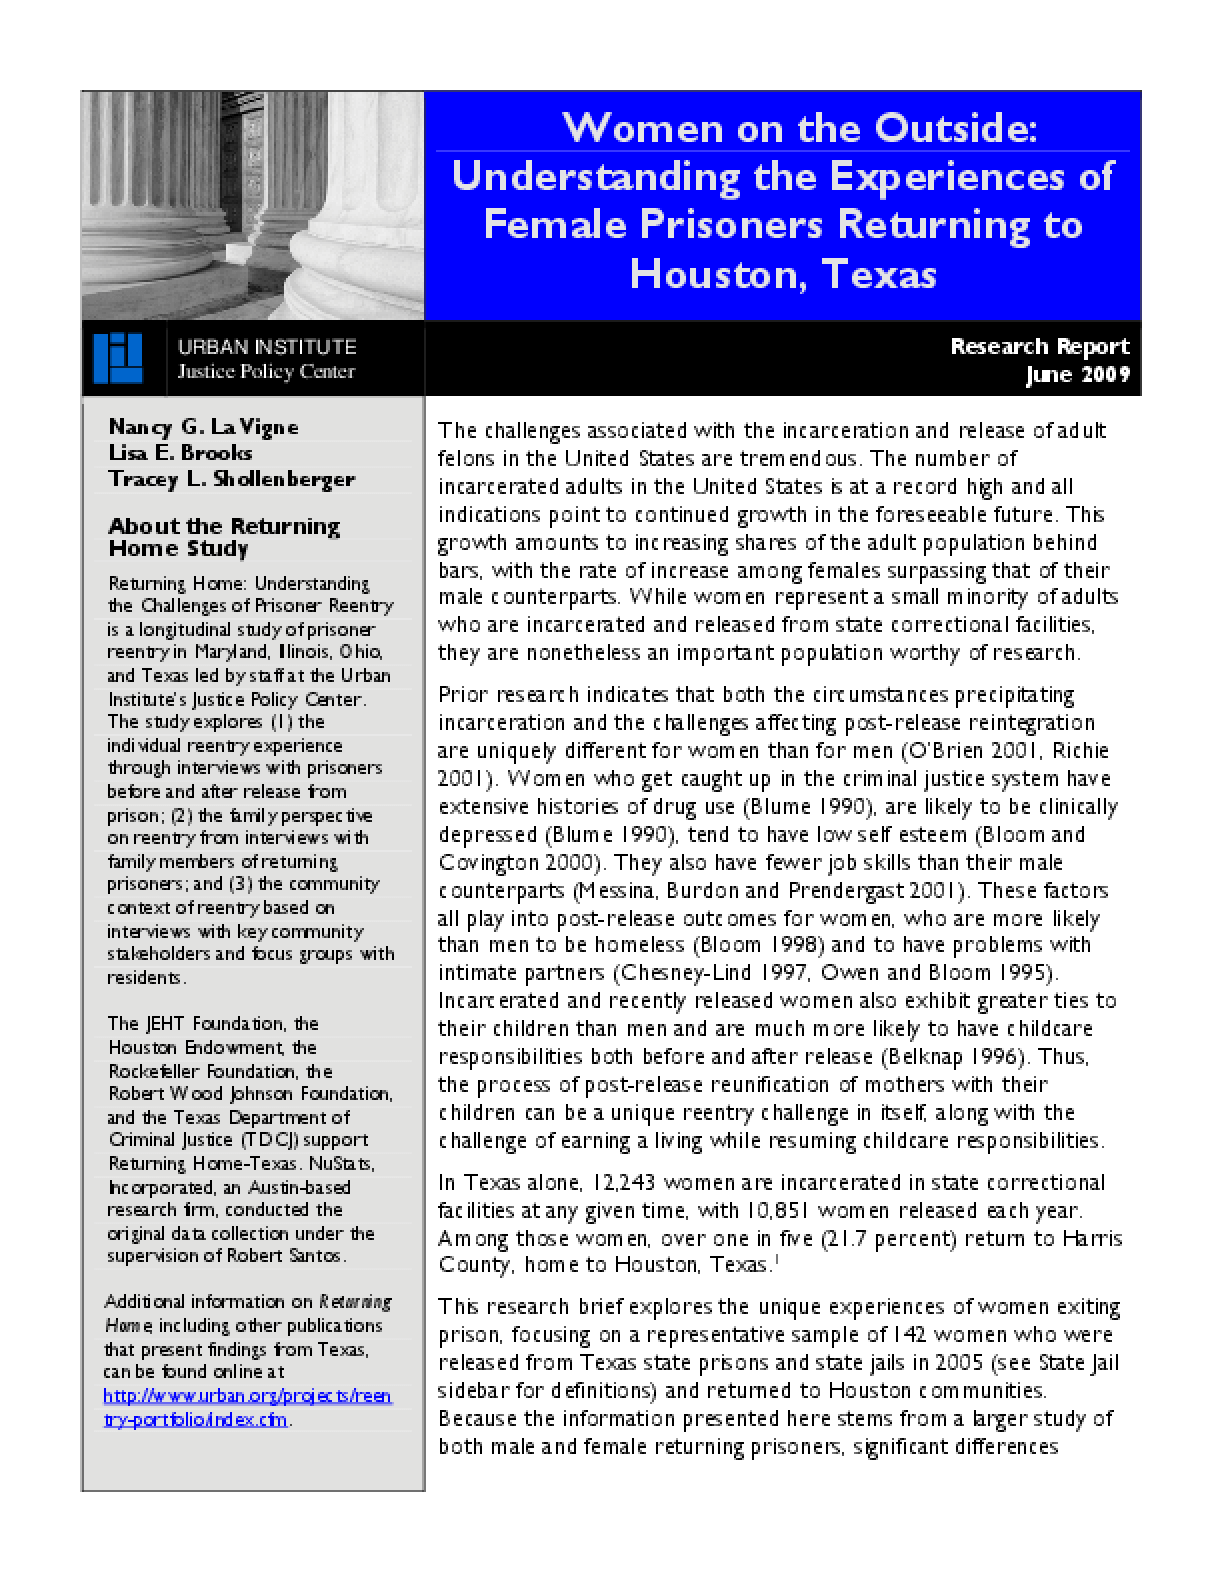 Women on the Outside: Understanding the Experiences of Female Prisoners Returning to Houston, Texas